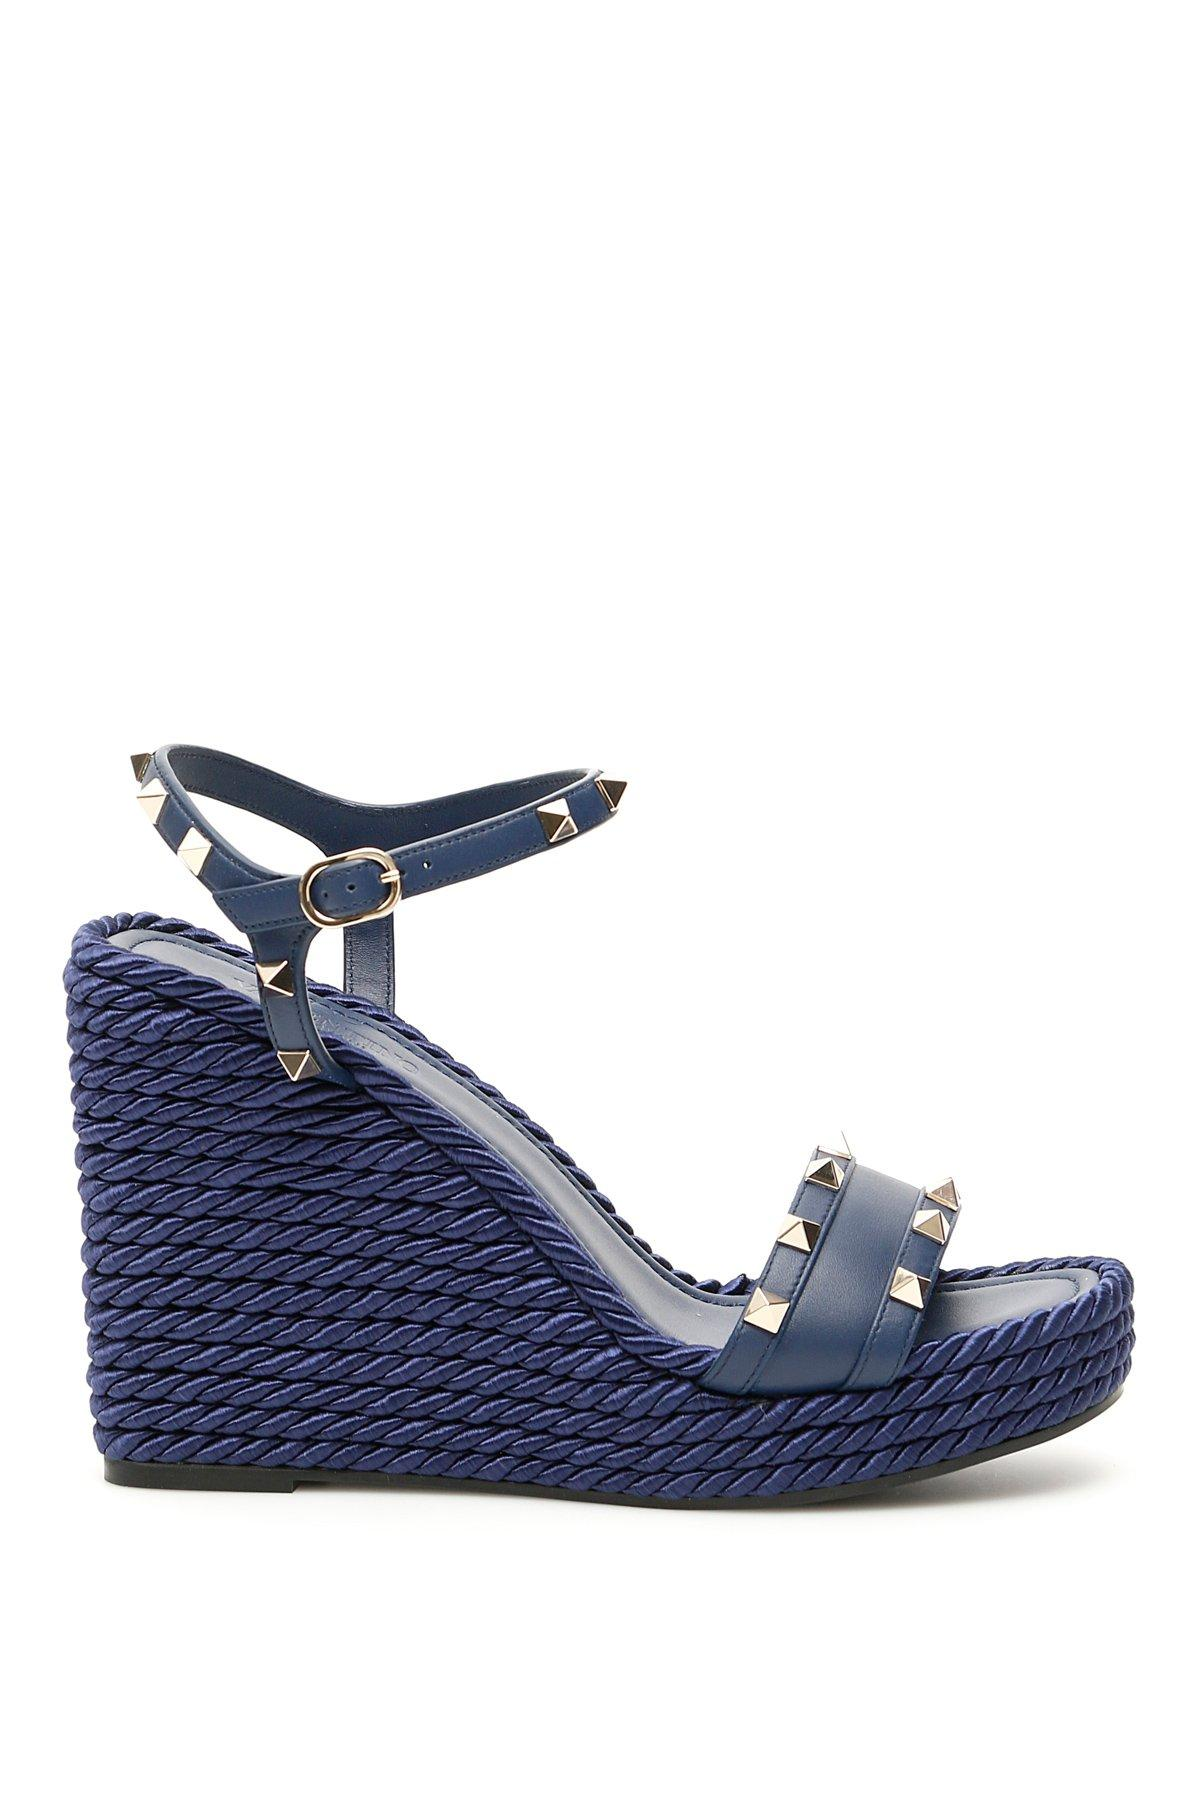 2fe280c77f41d Valentino Garavani Rockstud Wedge Sandals in Blue - Save 19% - Lyst